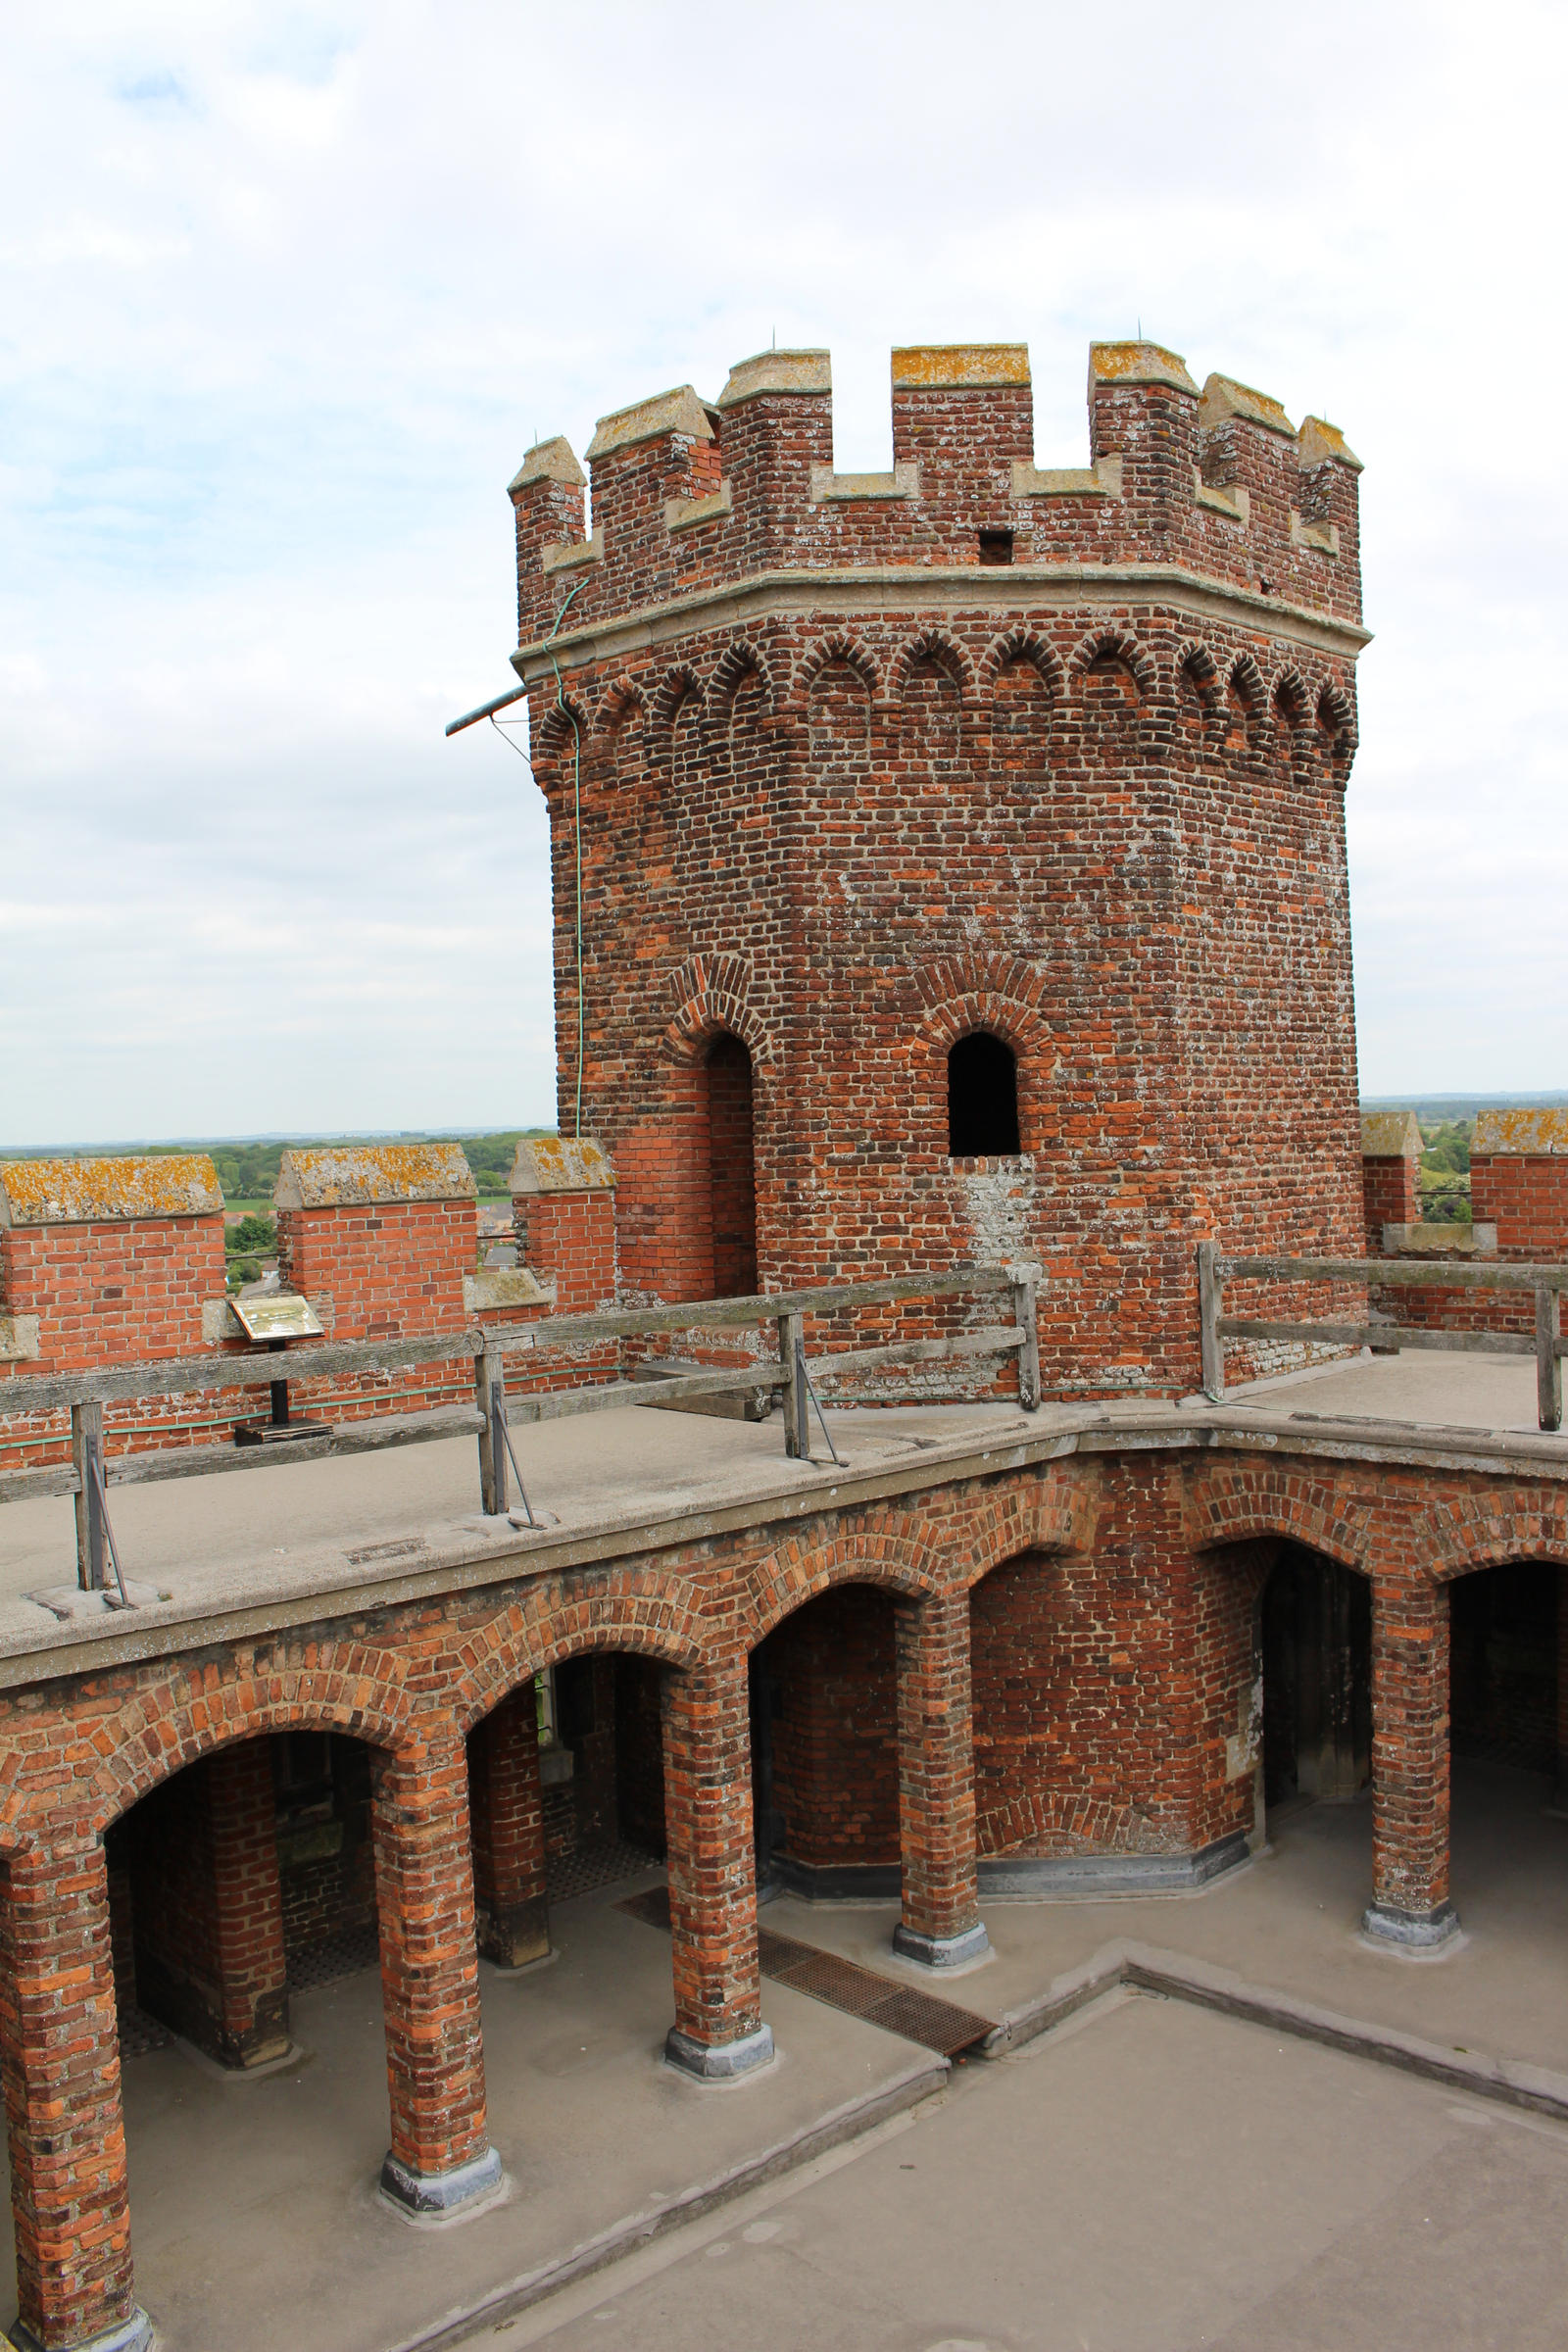 Fortress Courtyard 03 - Turret detail